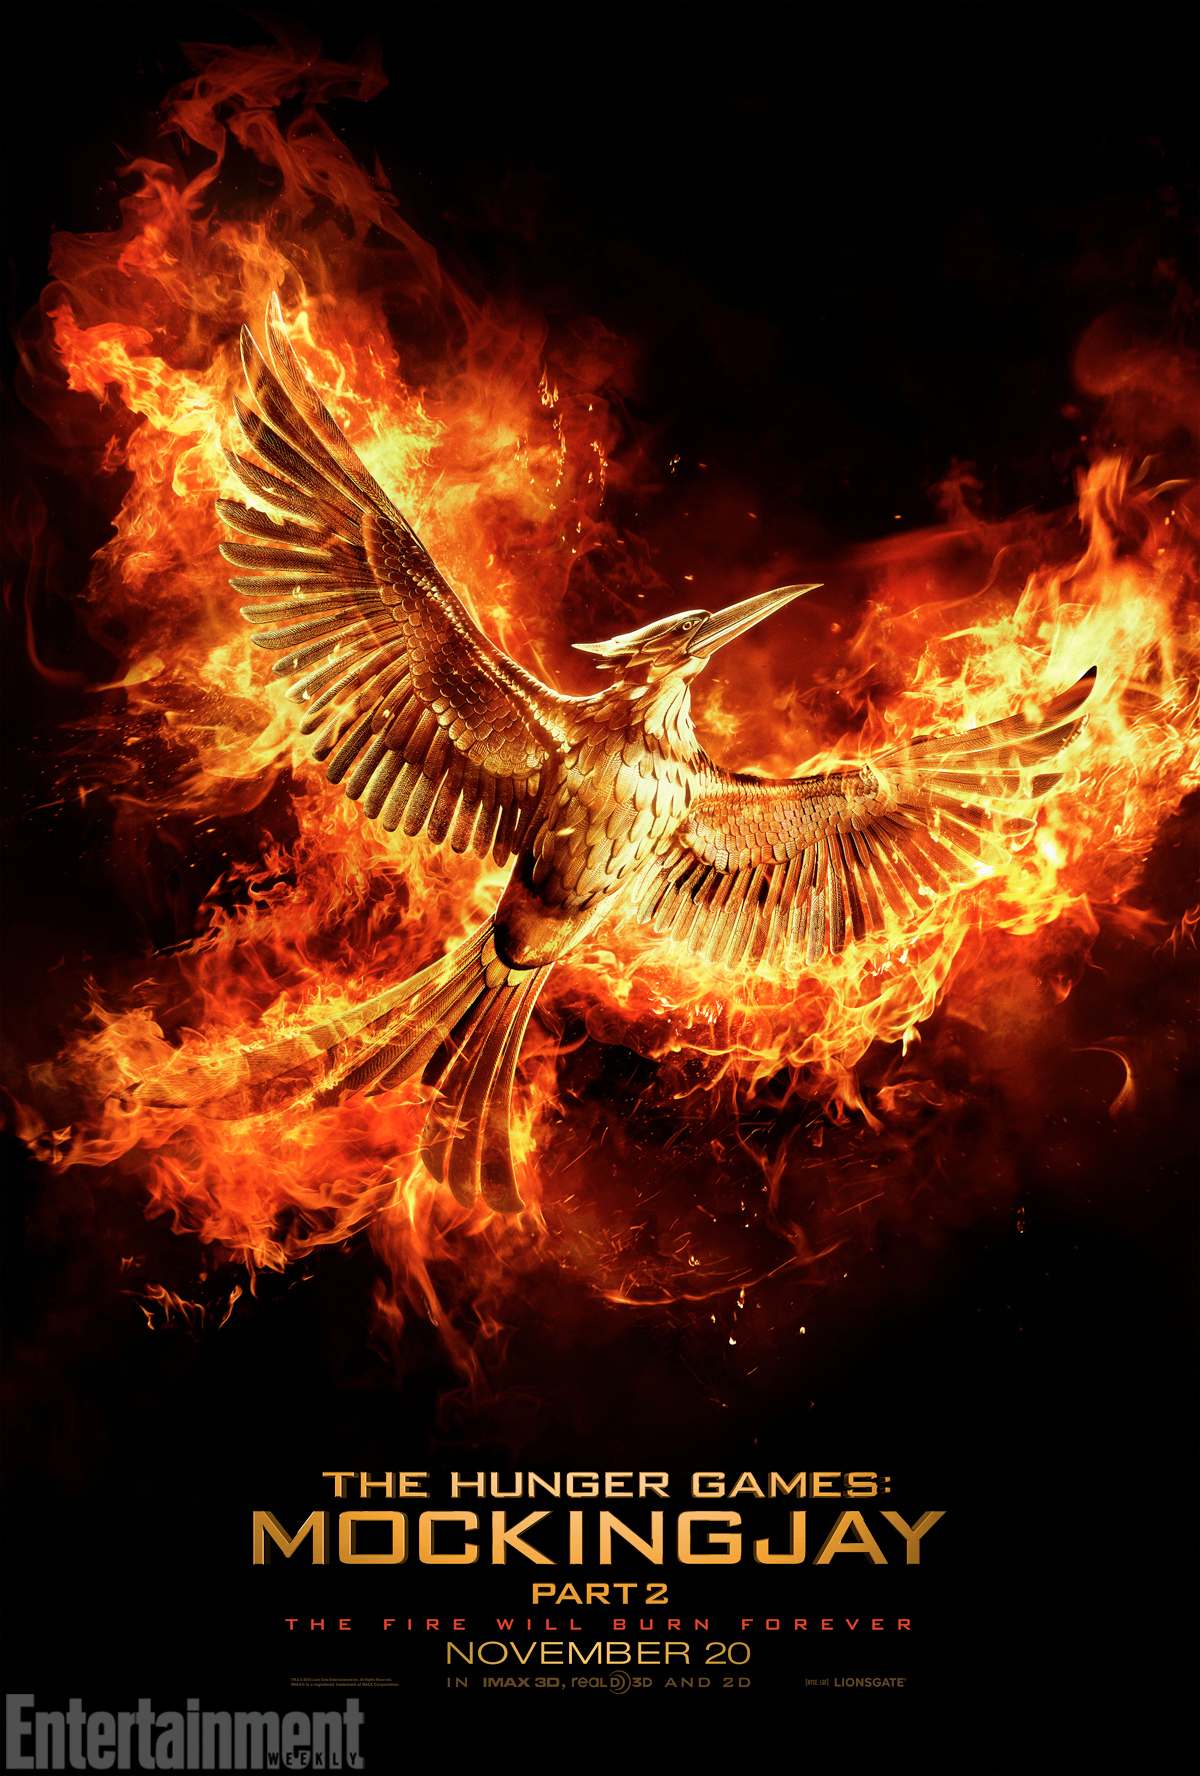 The Hunger Games Mockingjay Part 2 Teaser Poster See It Here